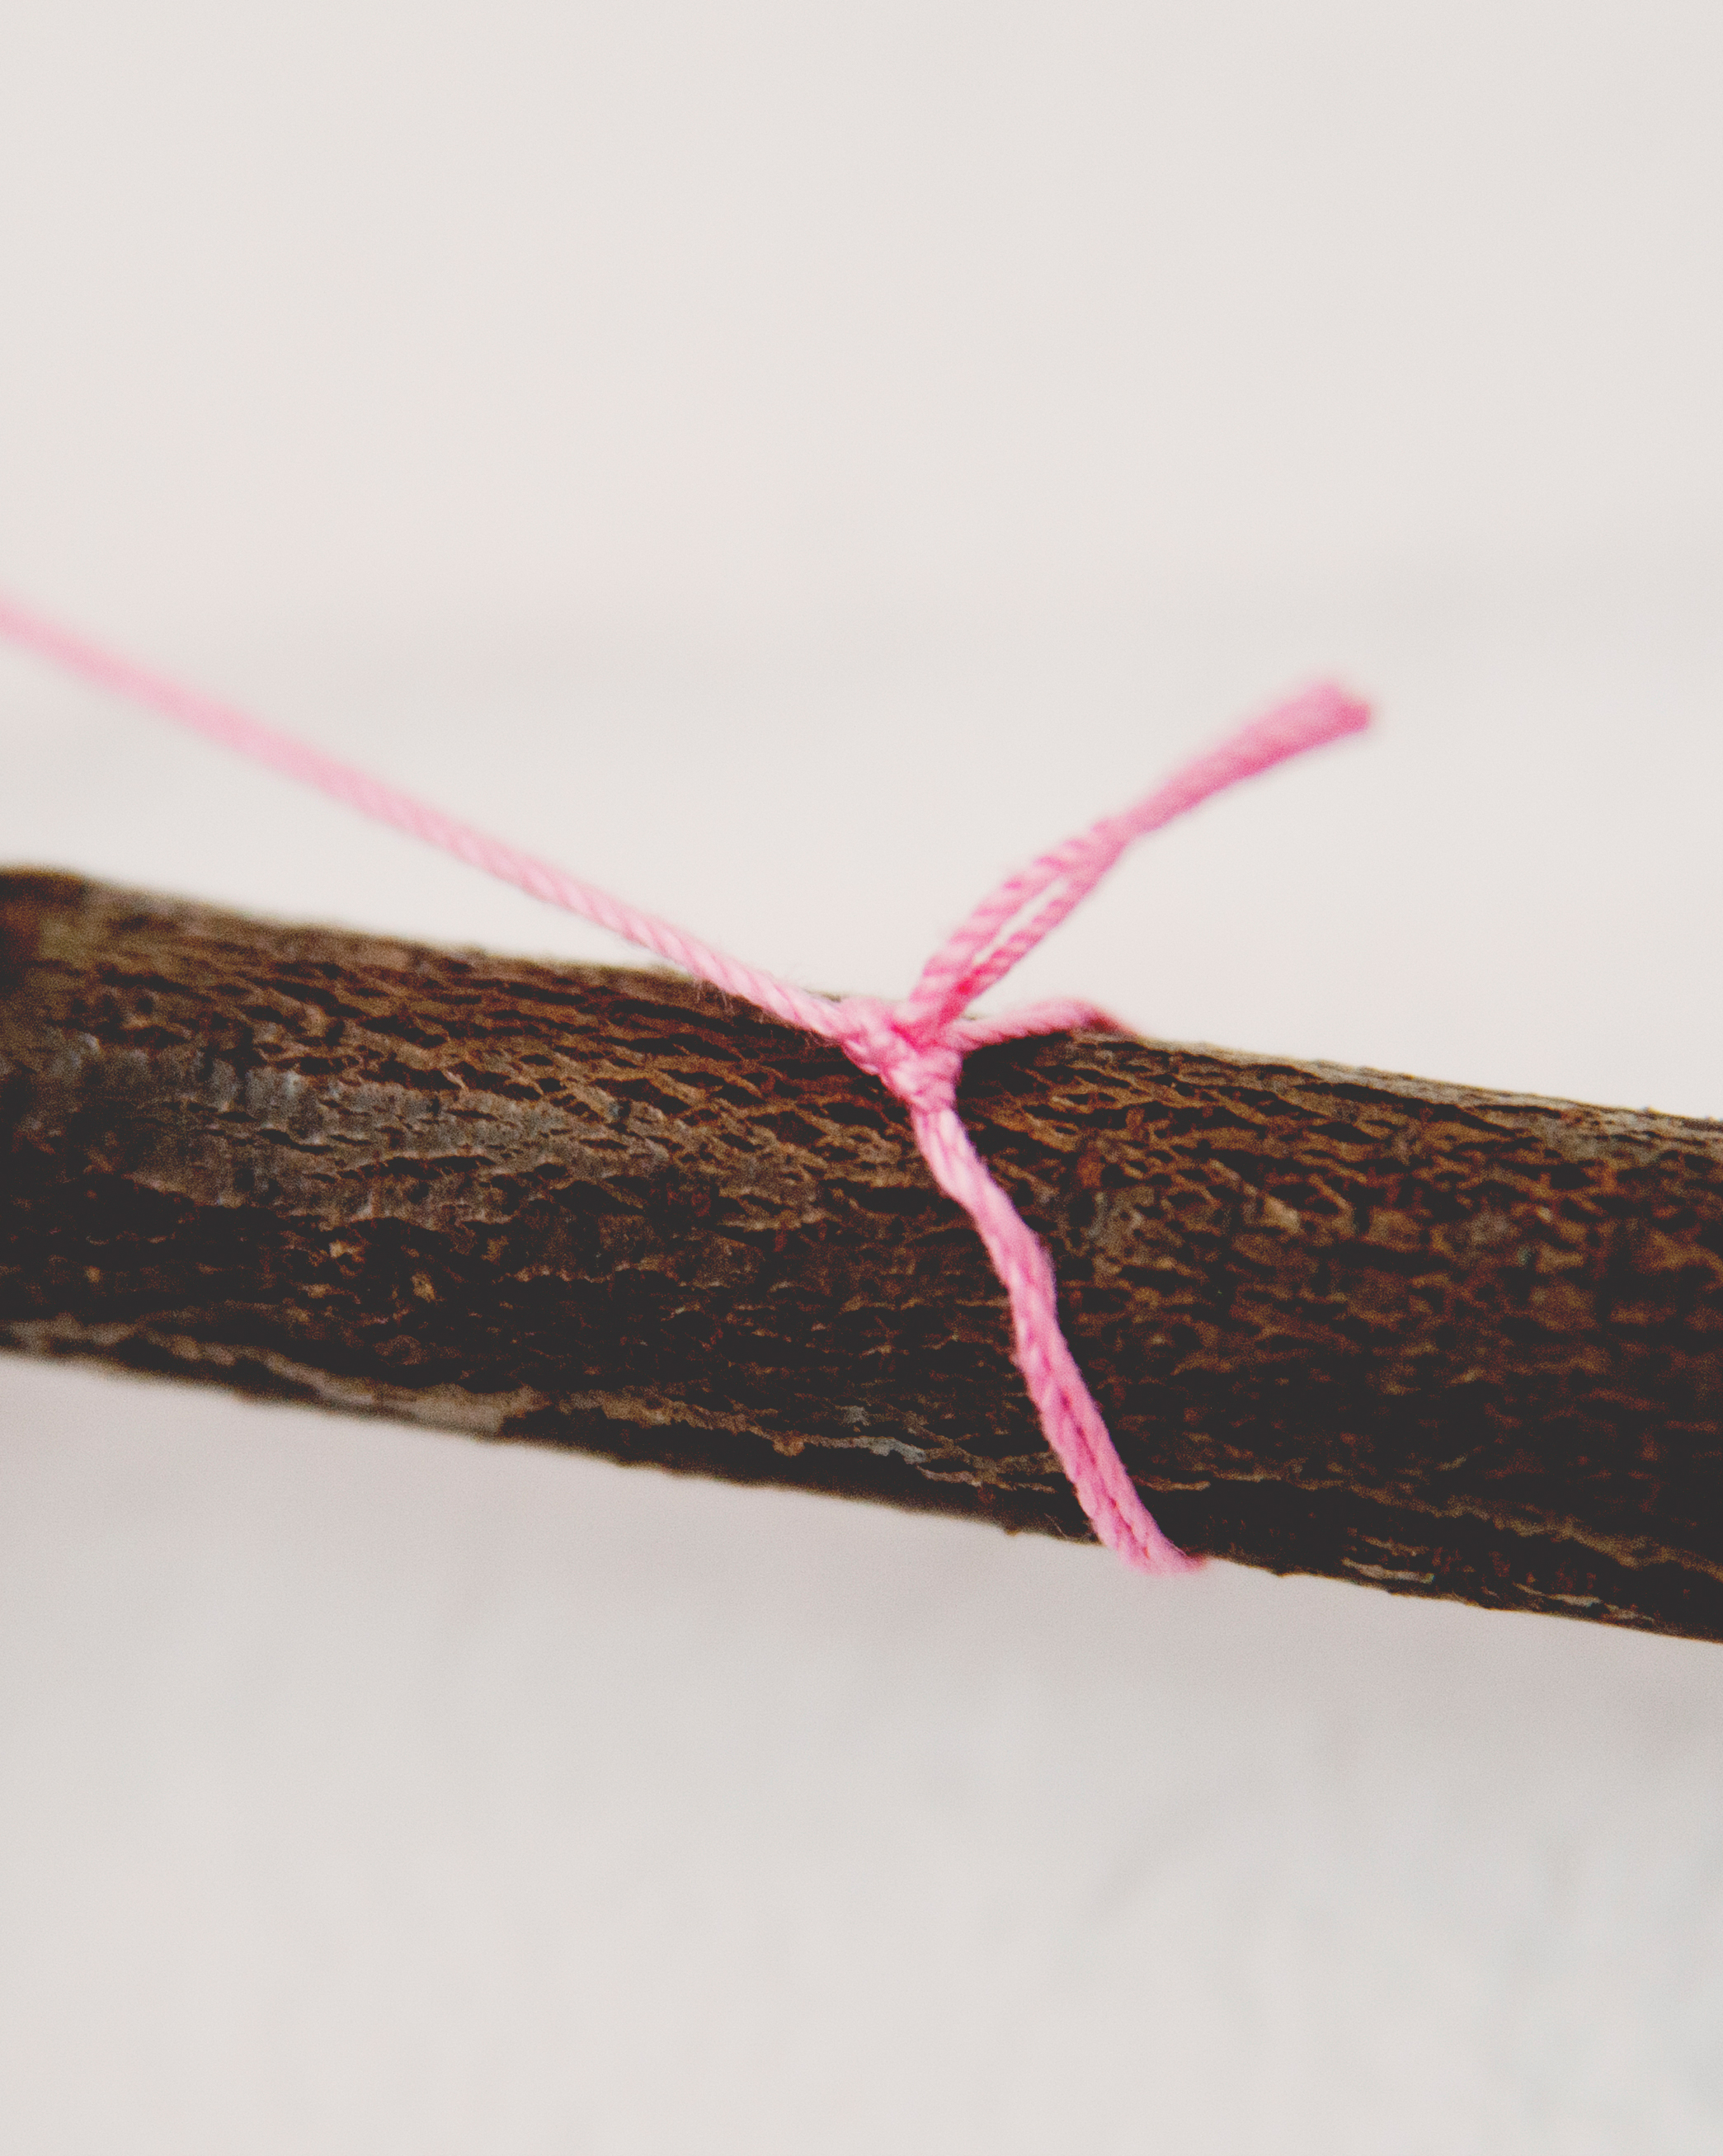 claire-thomas-bridal-shower-garden-diy-string-branch-0814.jpg